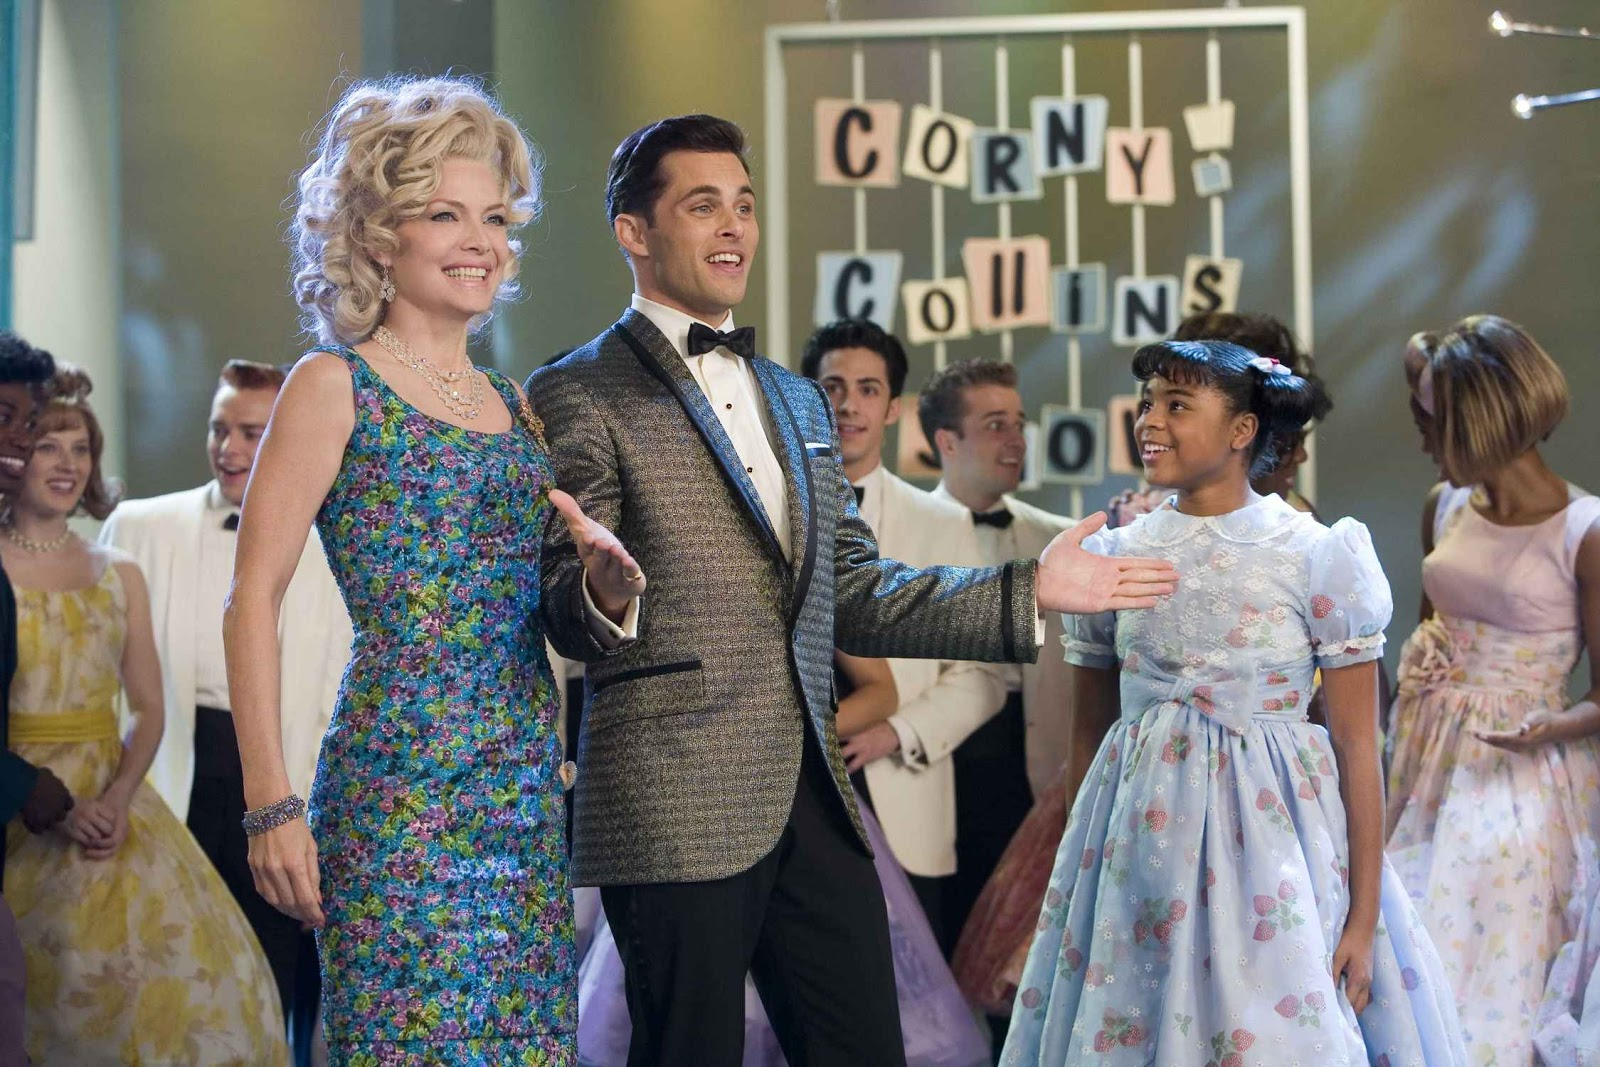 Girl from the movie hairspray